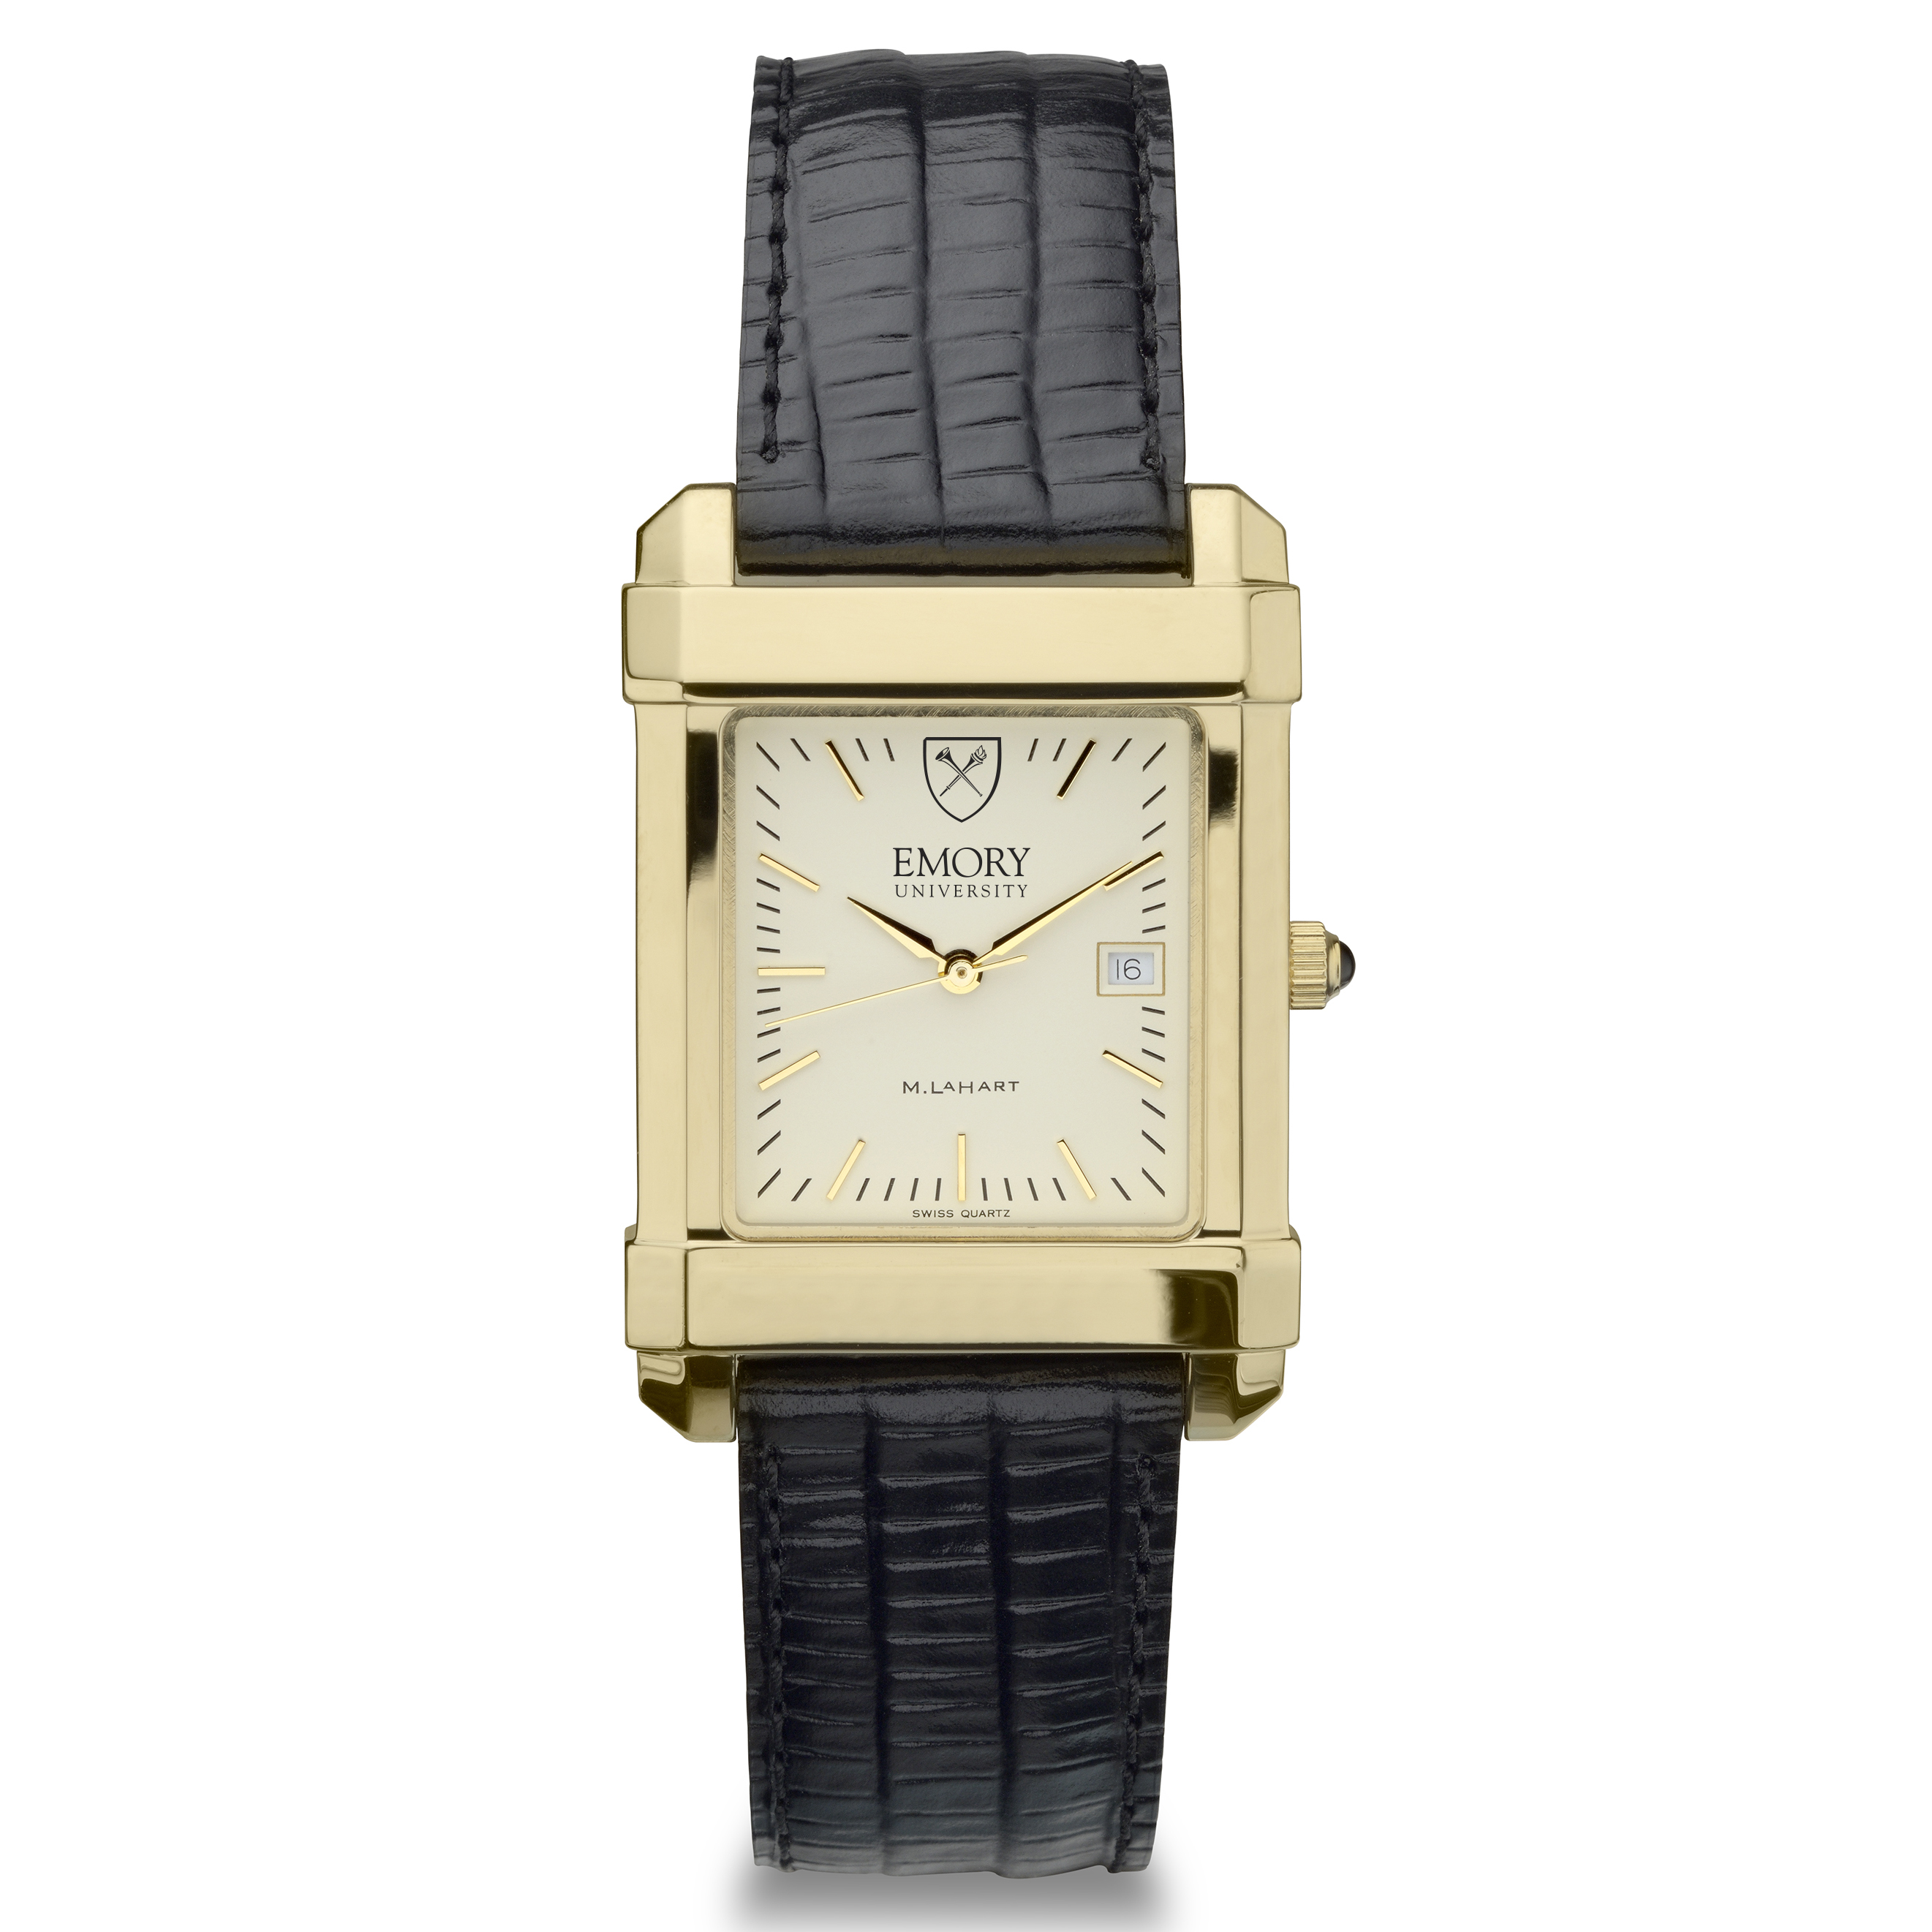 Emory Men's Gold Quad Watch with Leather Strap - Image 2